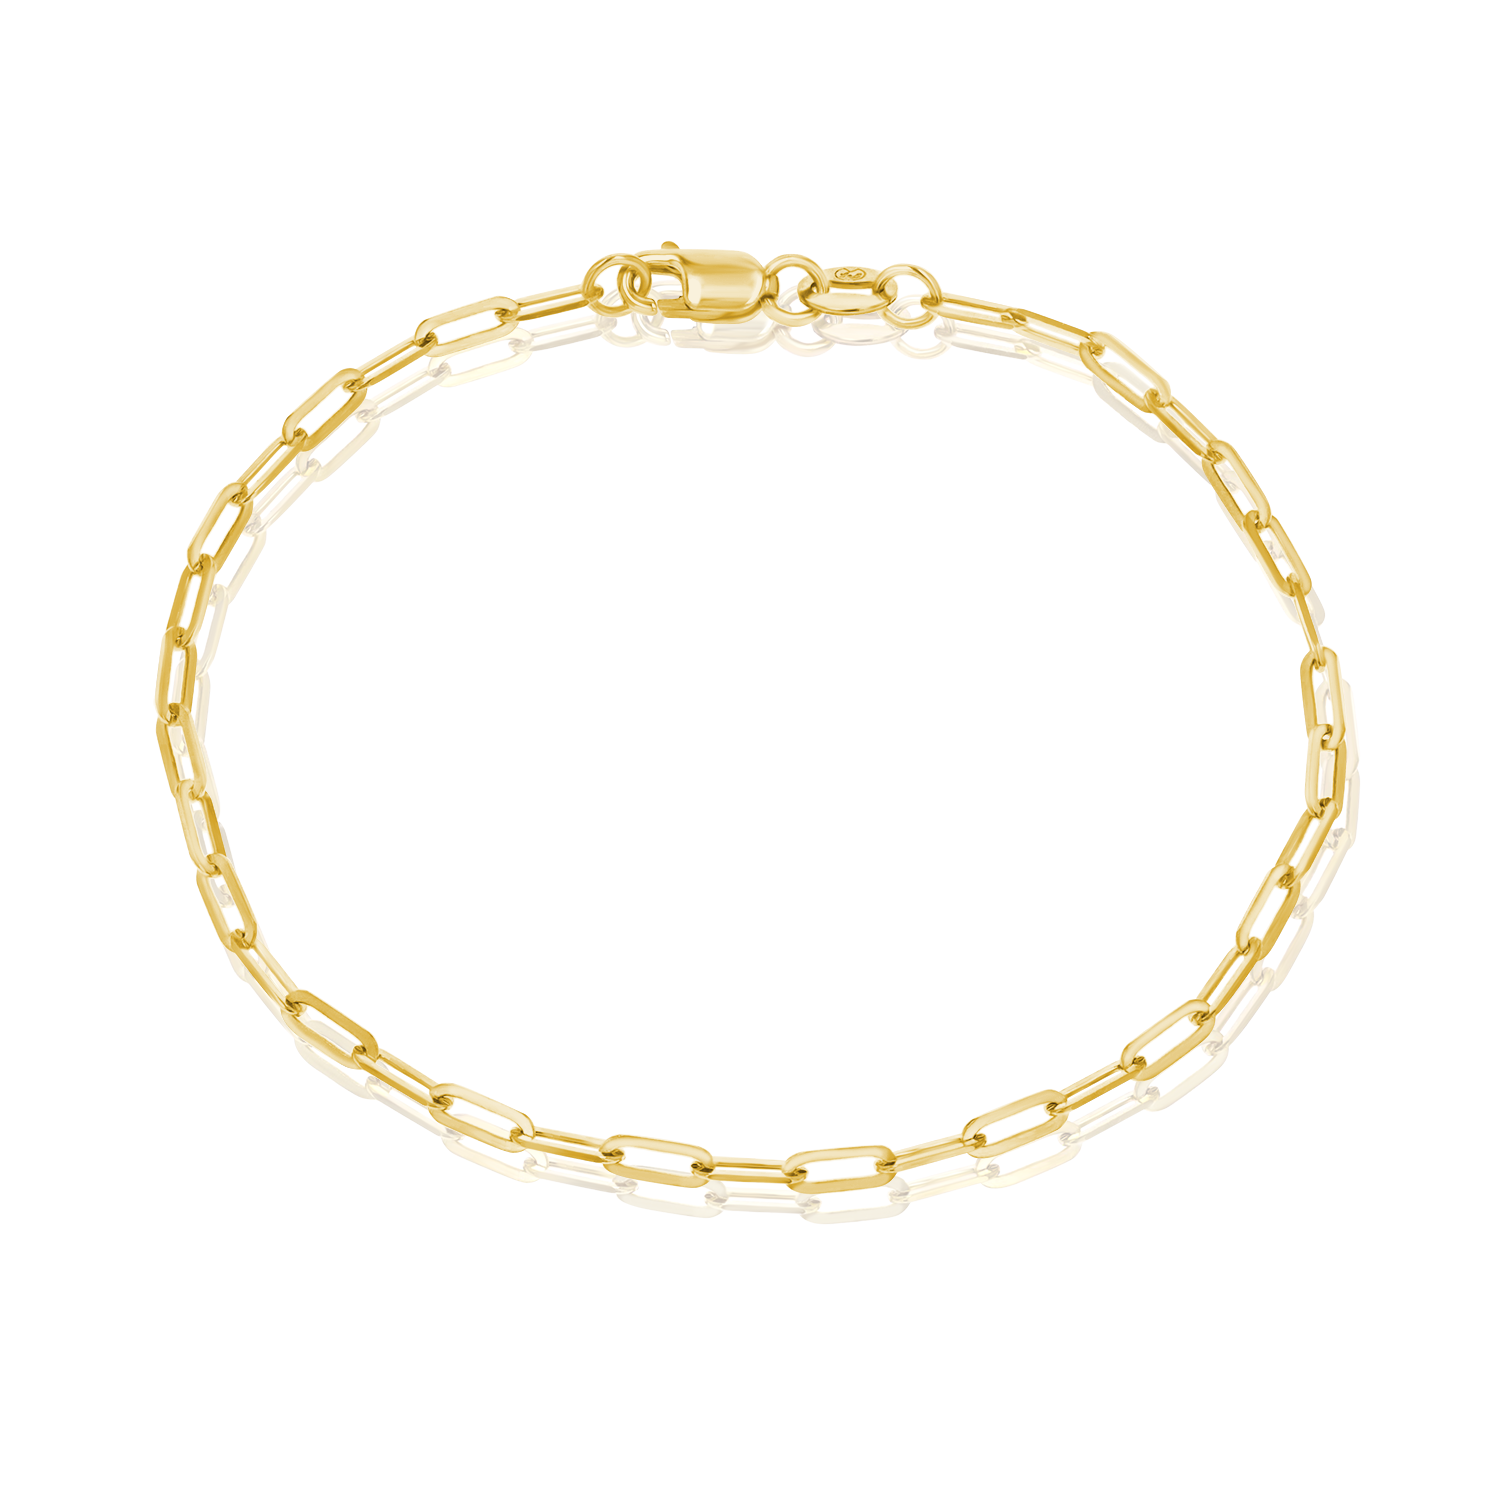 14K Diamond Cut Oval Link Bracelet